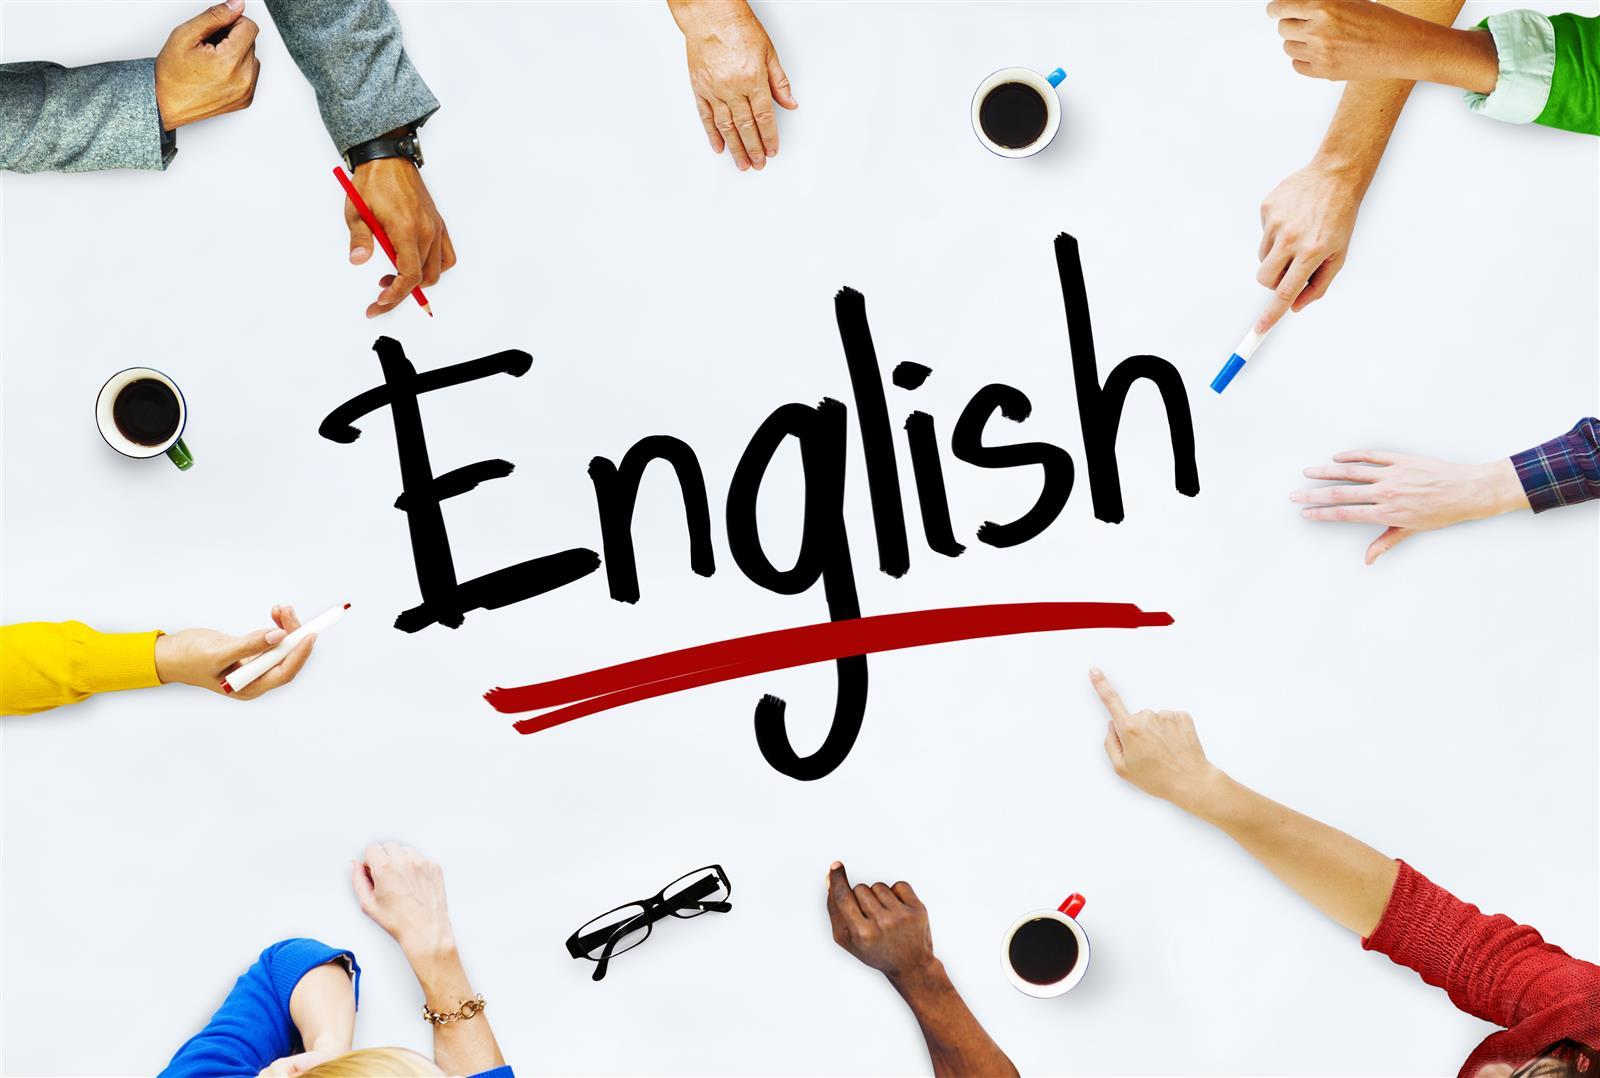 Learn English Online - Why is it Better?